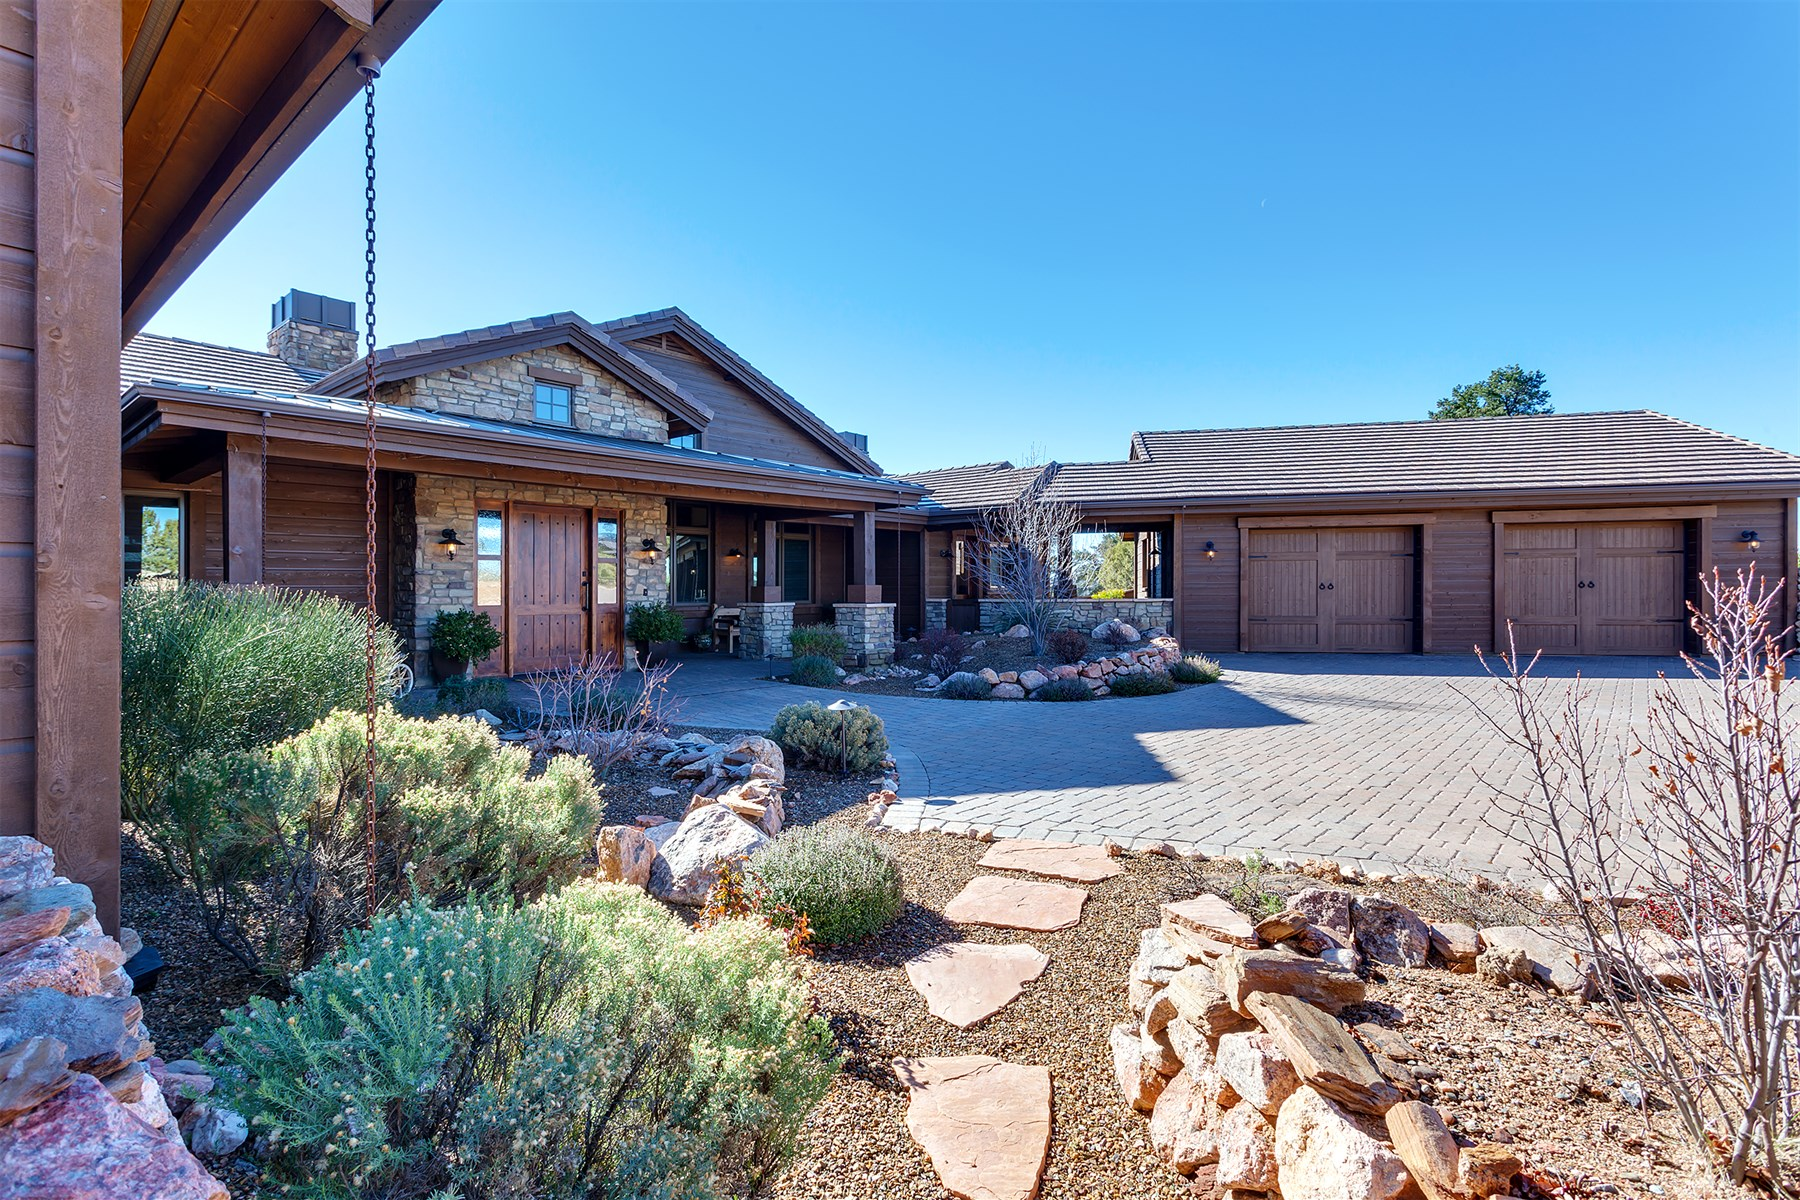 Moradia para Venda às Gorgeous Custom Home On 1.73 Acres With Spectacular Views 15085 N Four Mile Creek Lane Prescott, Arizona 86305 Estados Unidos